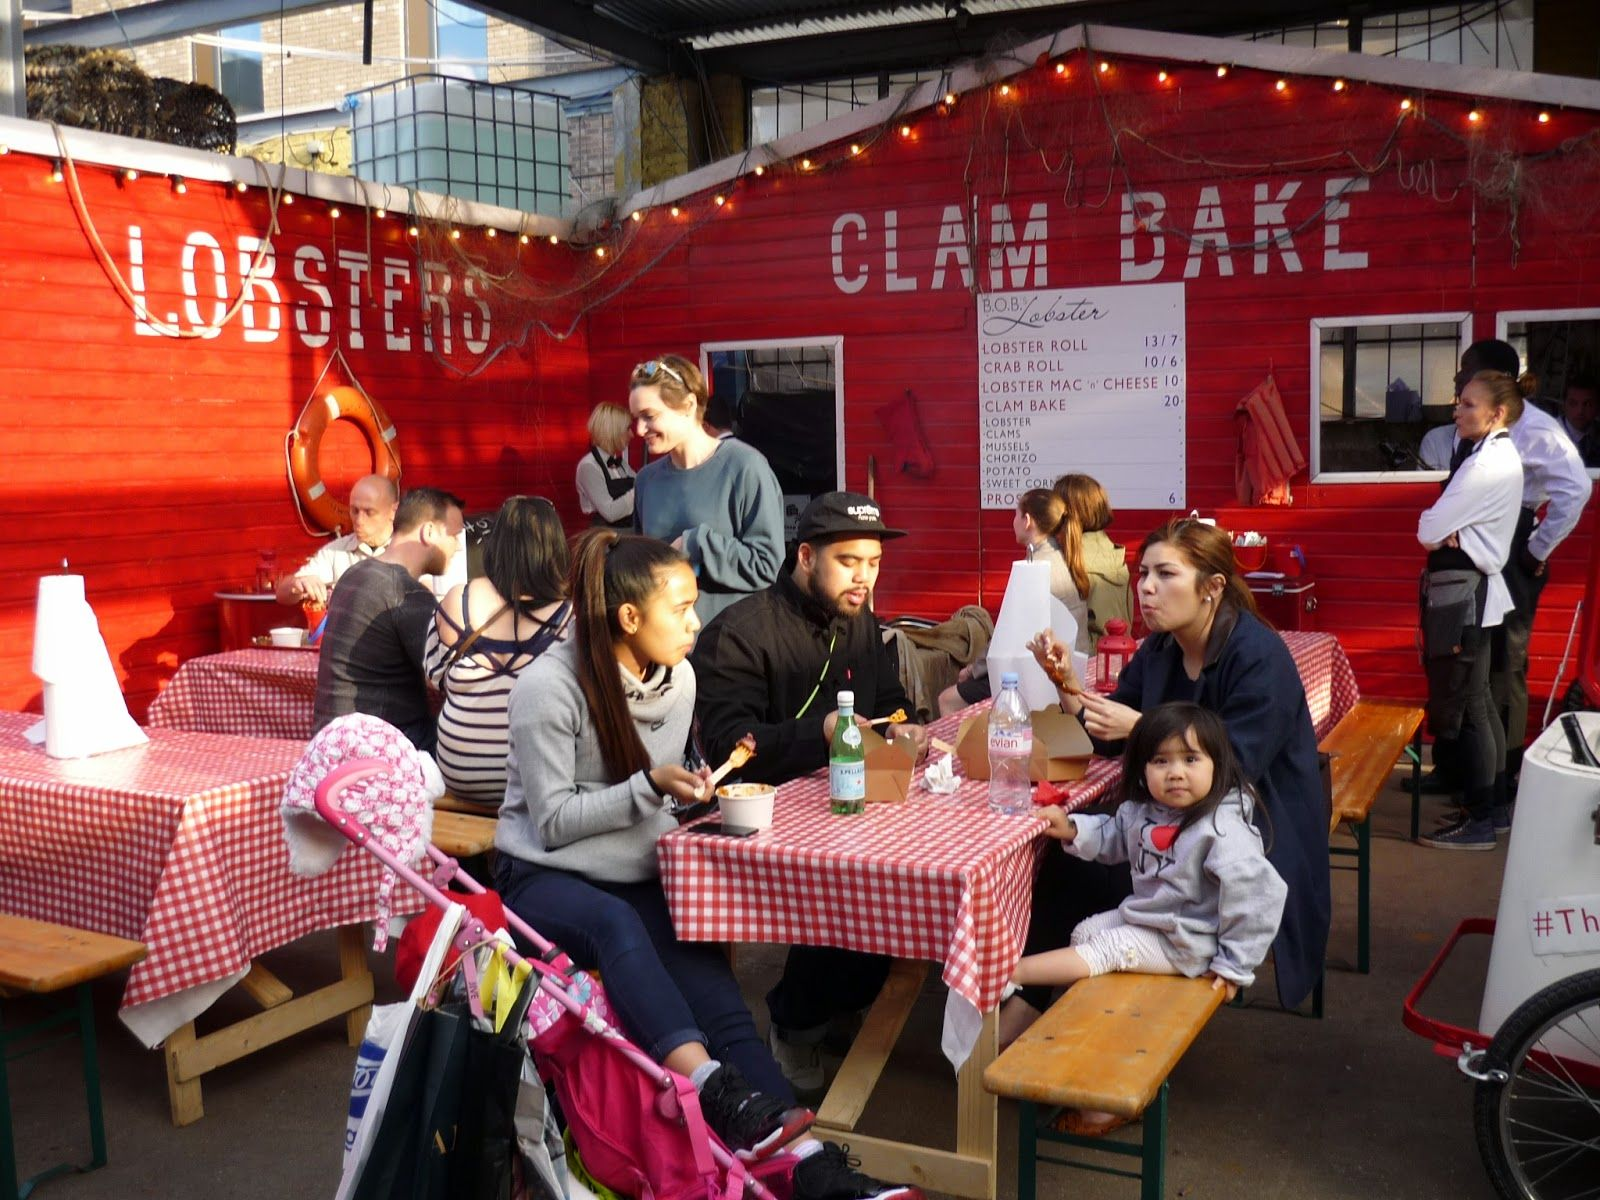 Street Feast London Food Outside Venue Review Clam